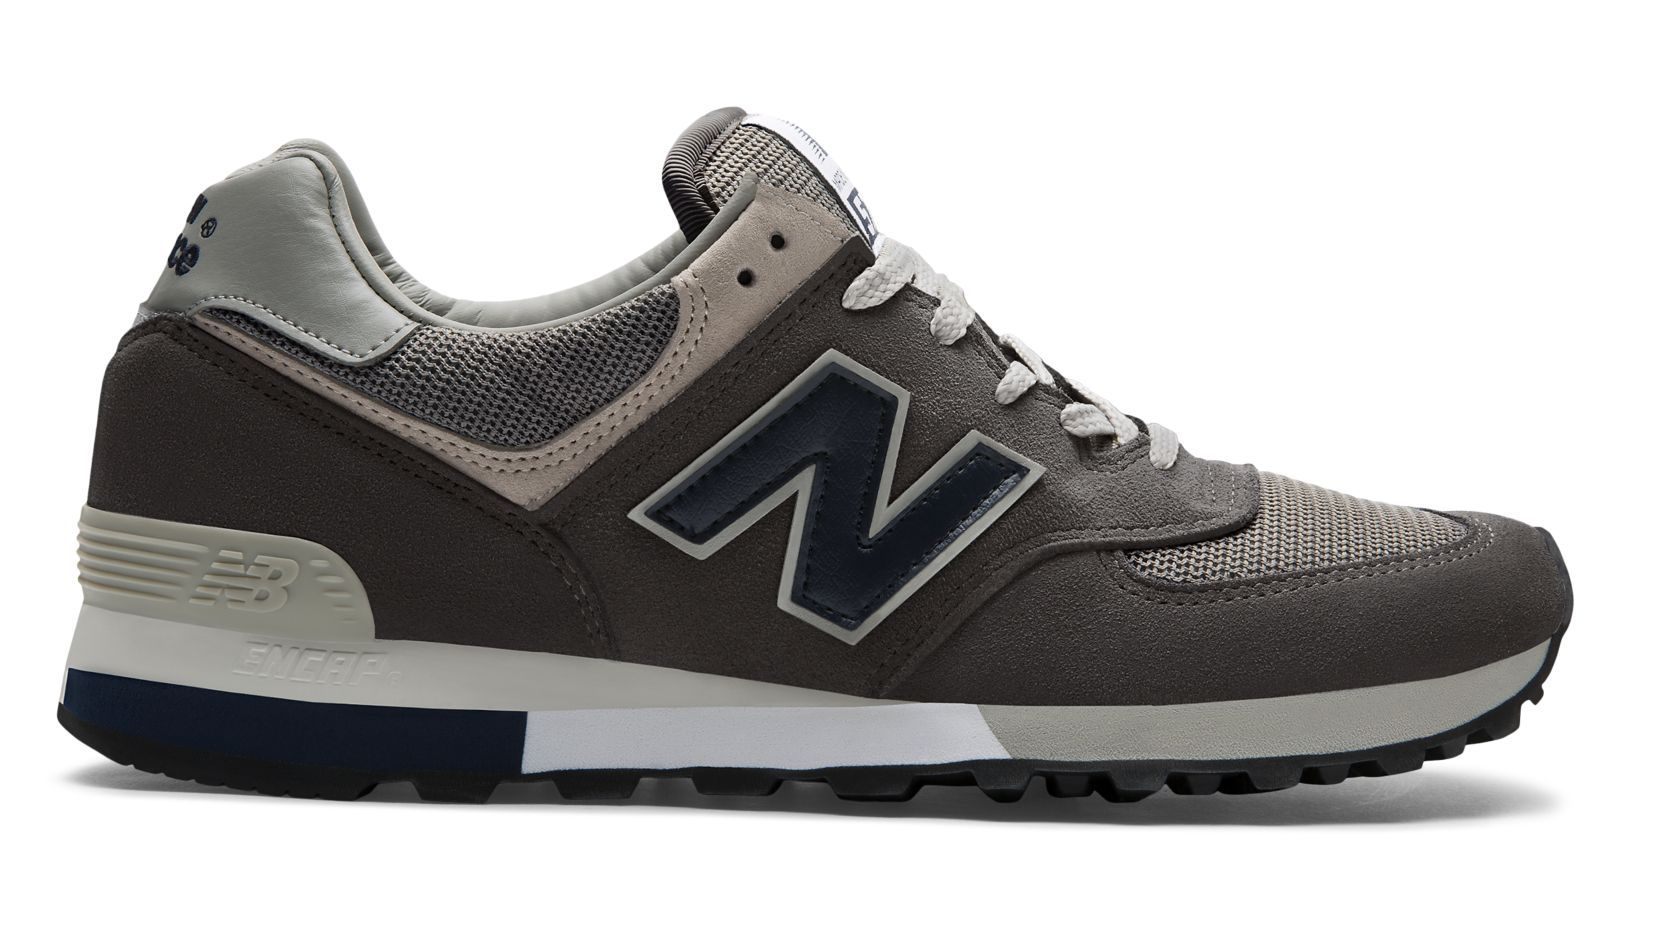 New Balance Made in UK 576 OG Pack new solid color casual sandals